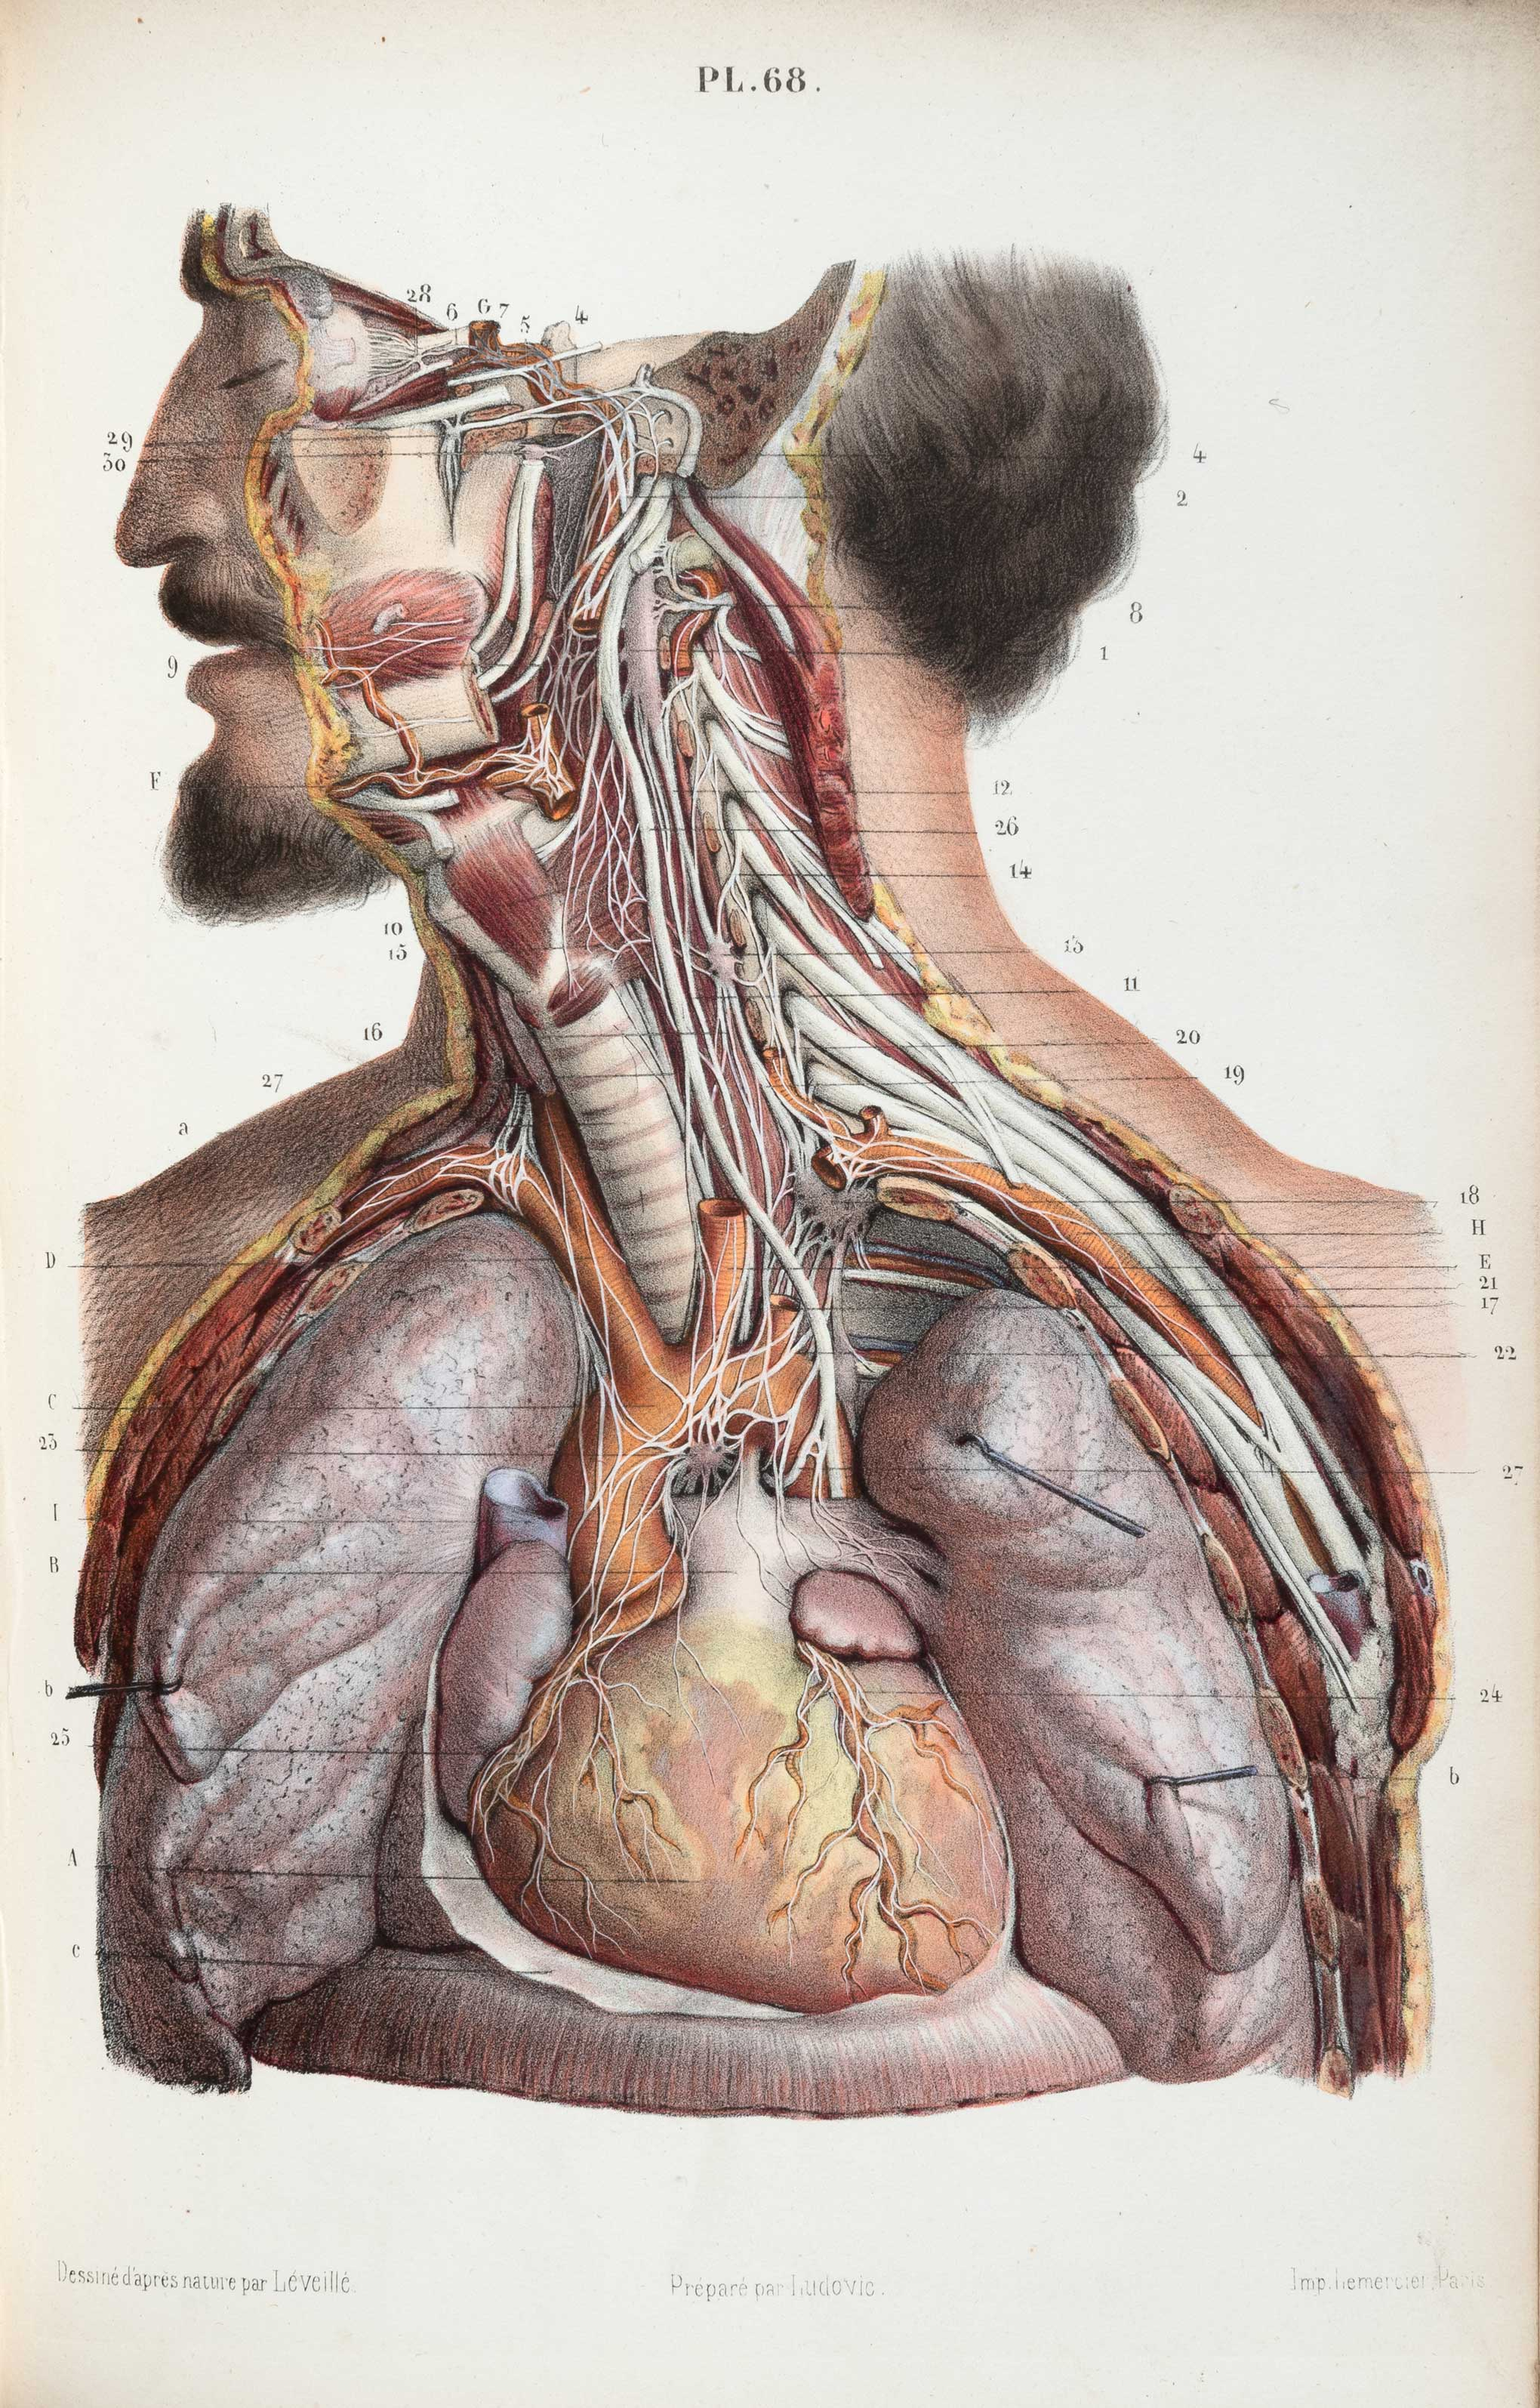 These Old Anatomical Drawings Are Worth Dissecting